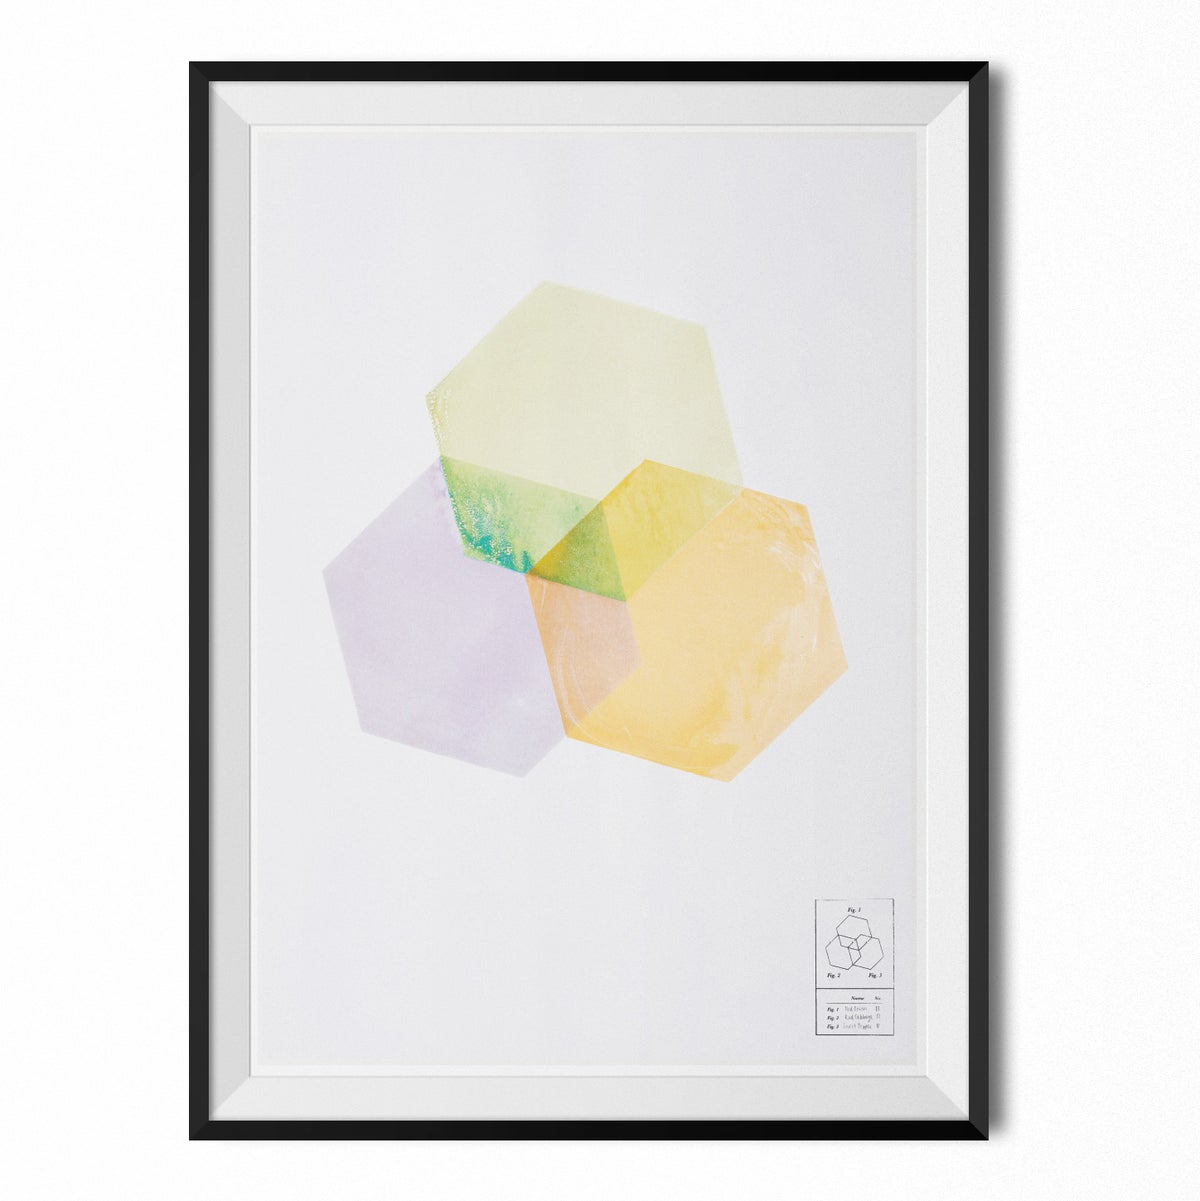 Image of Hexagon shapes #2